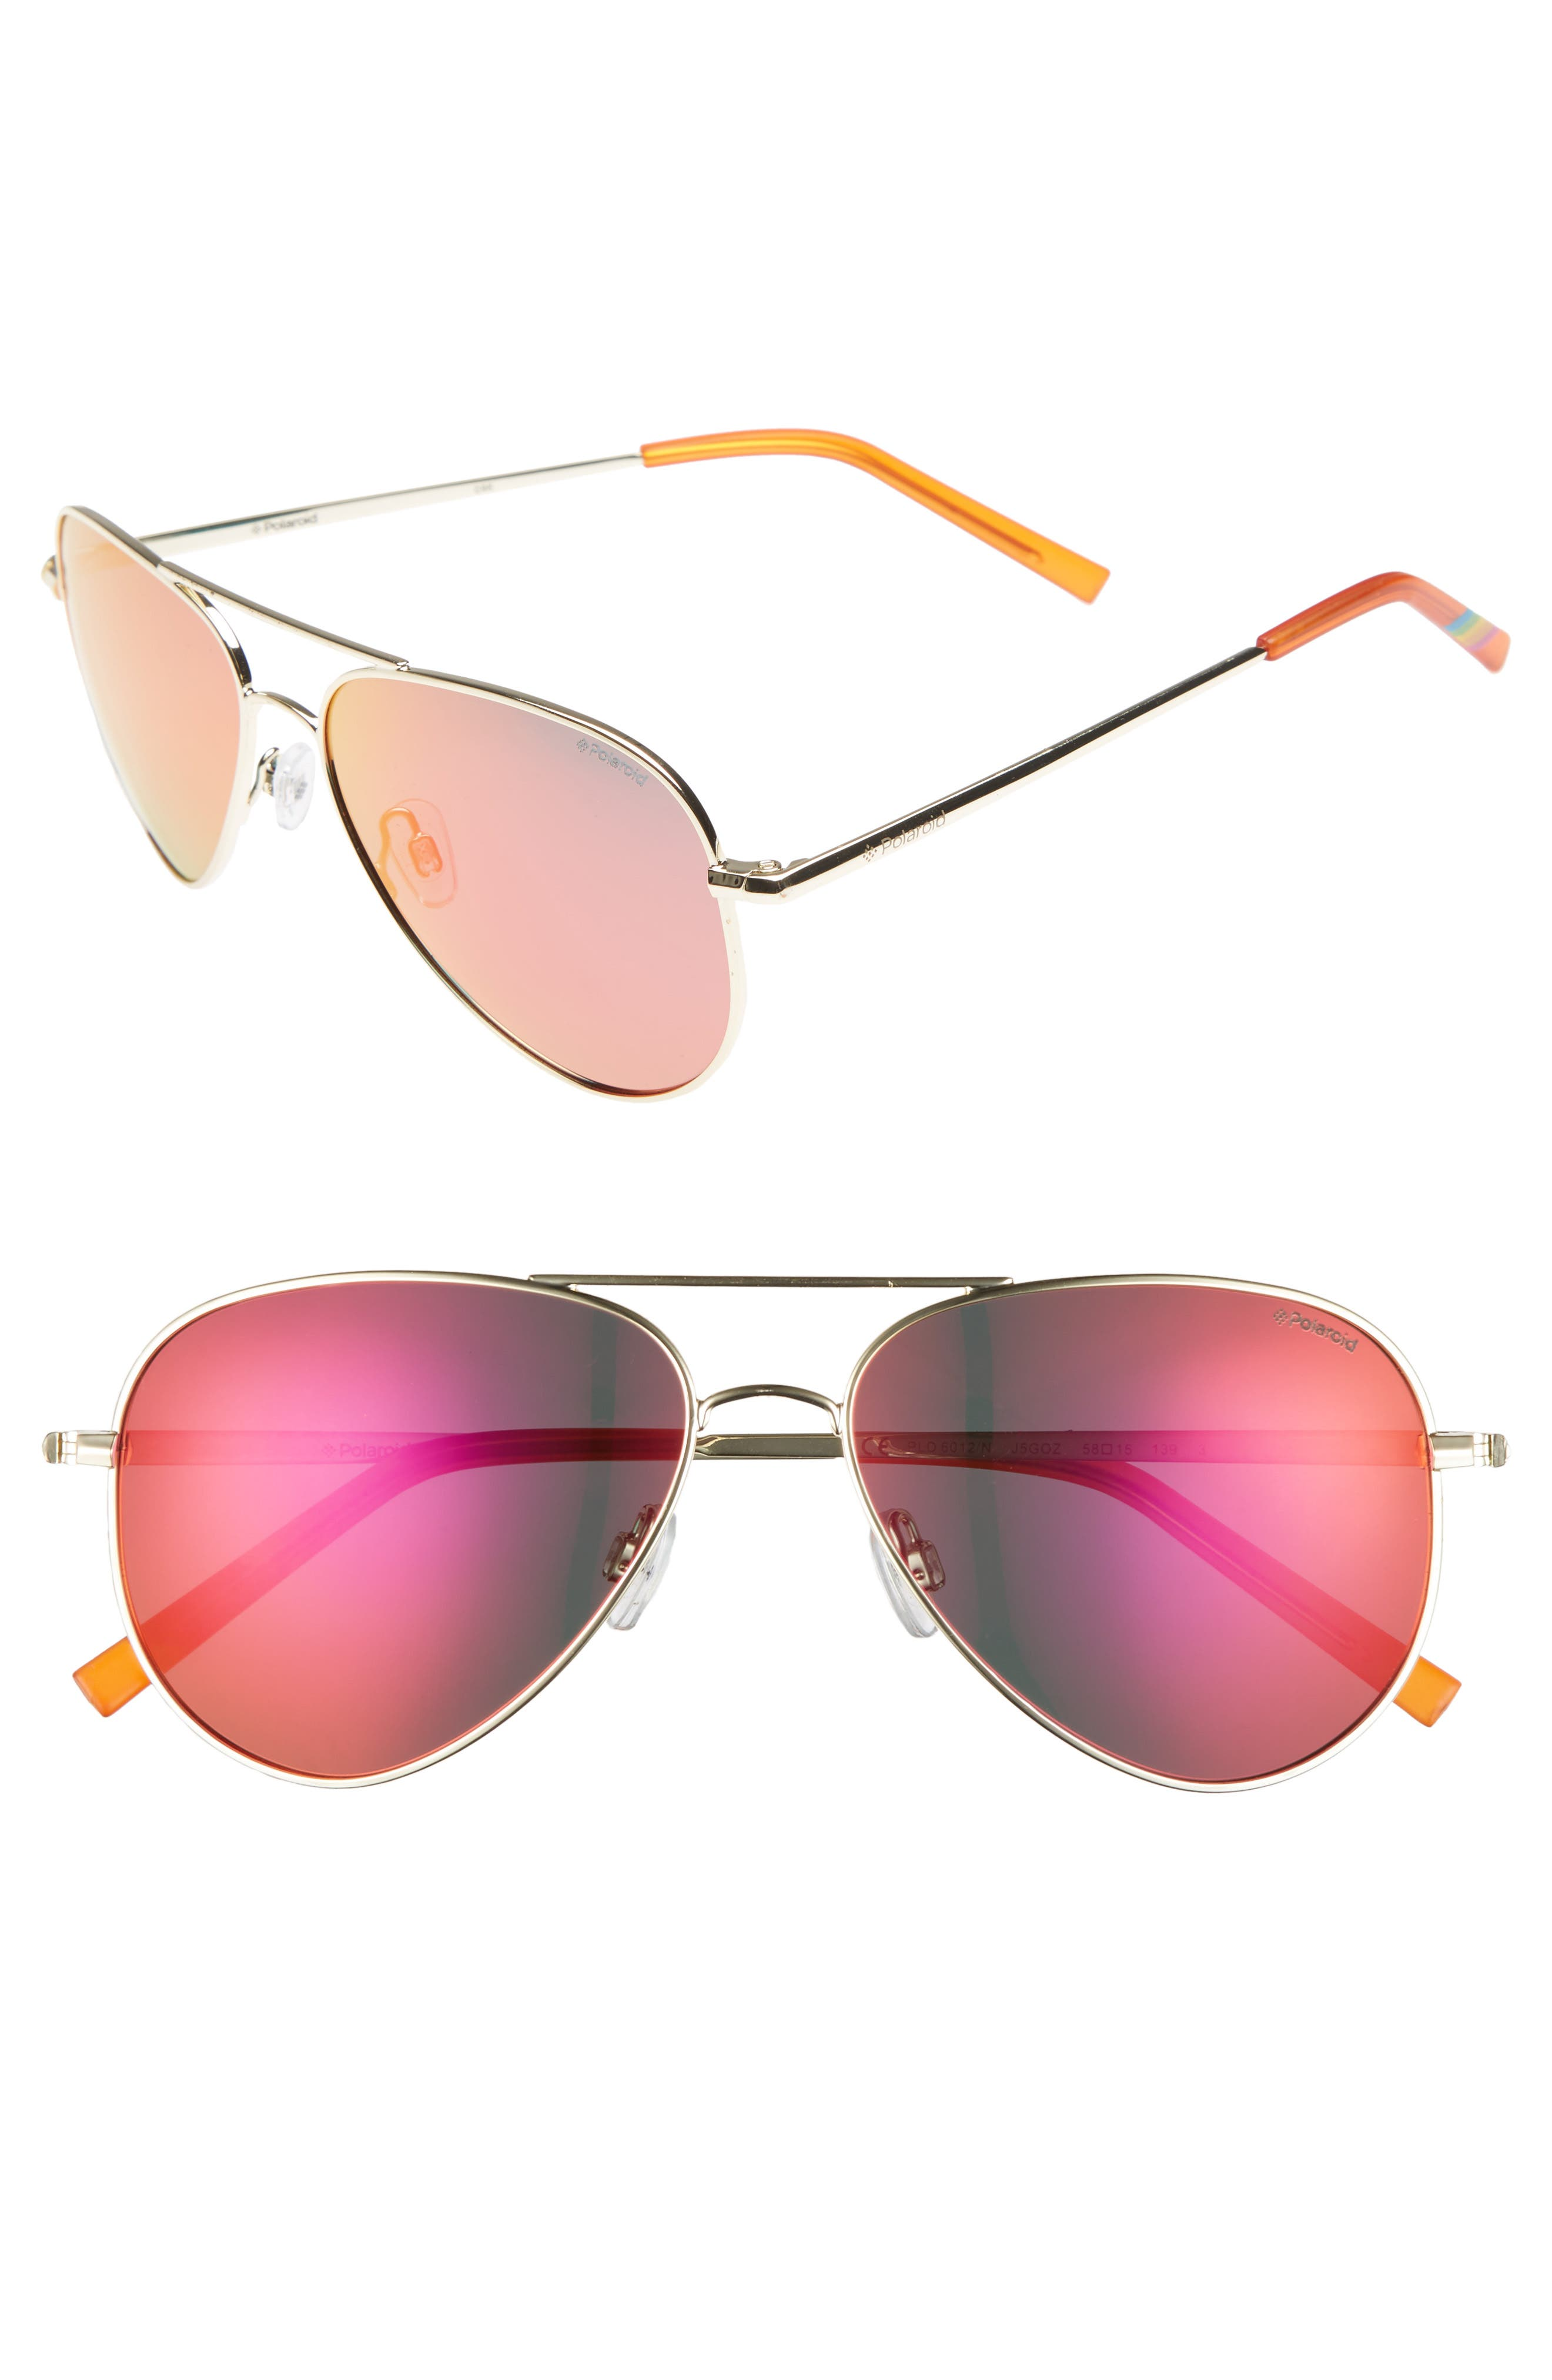 56mm Polarized Aviator Sunglasses,                             Main thumbnail 1, color,                             GOLD/ RED MIRROR